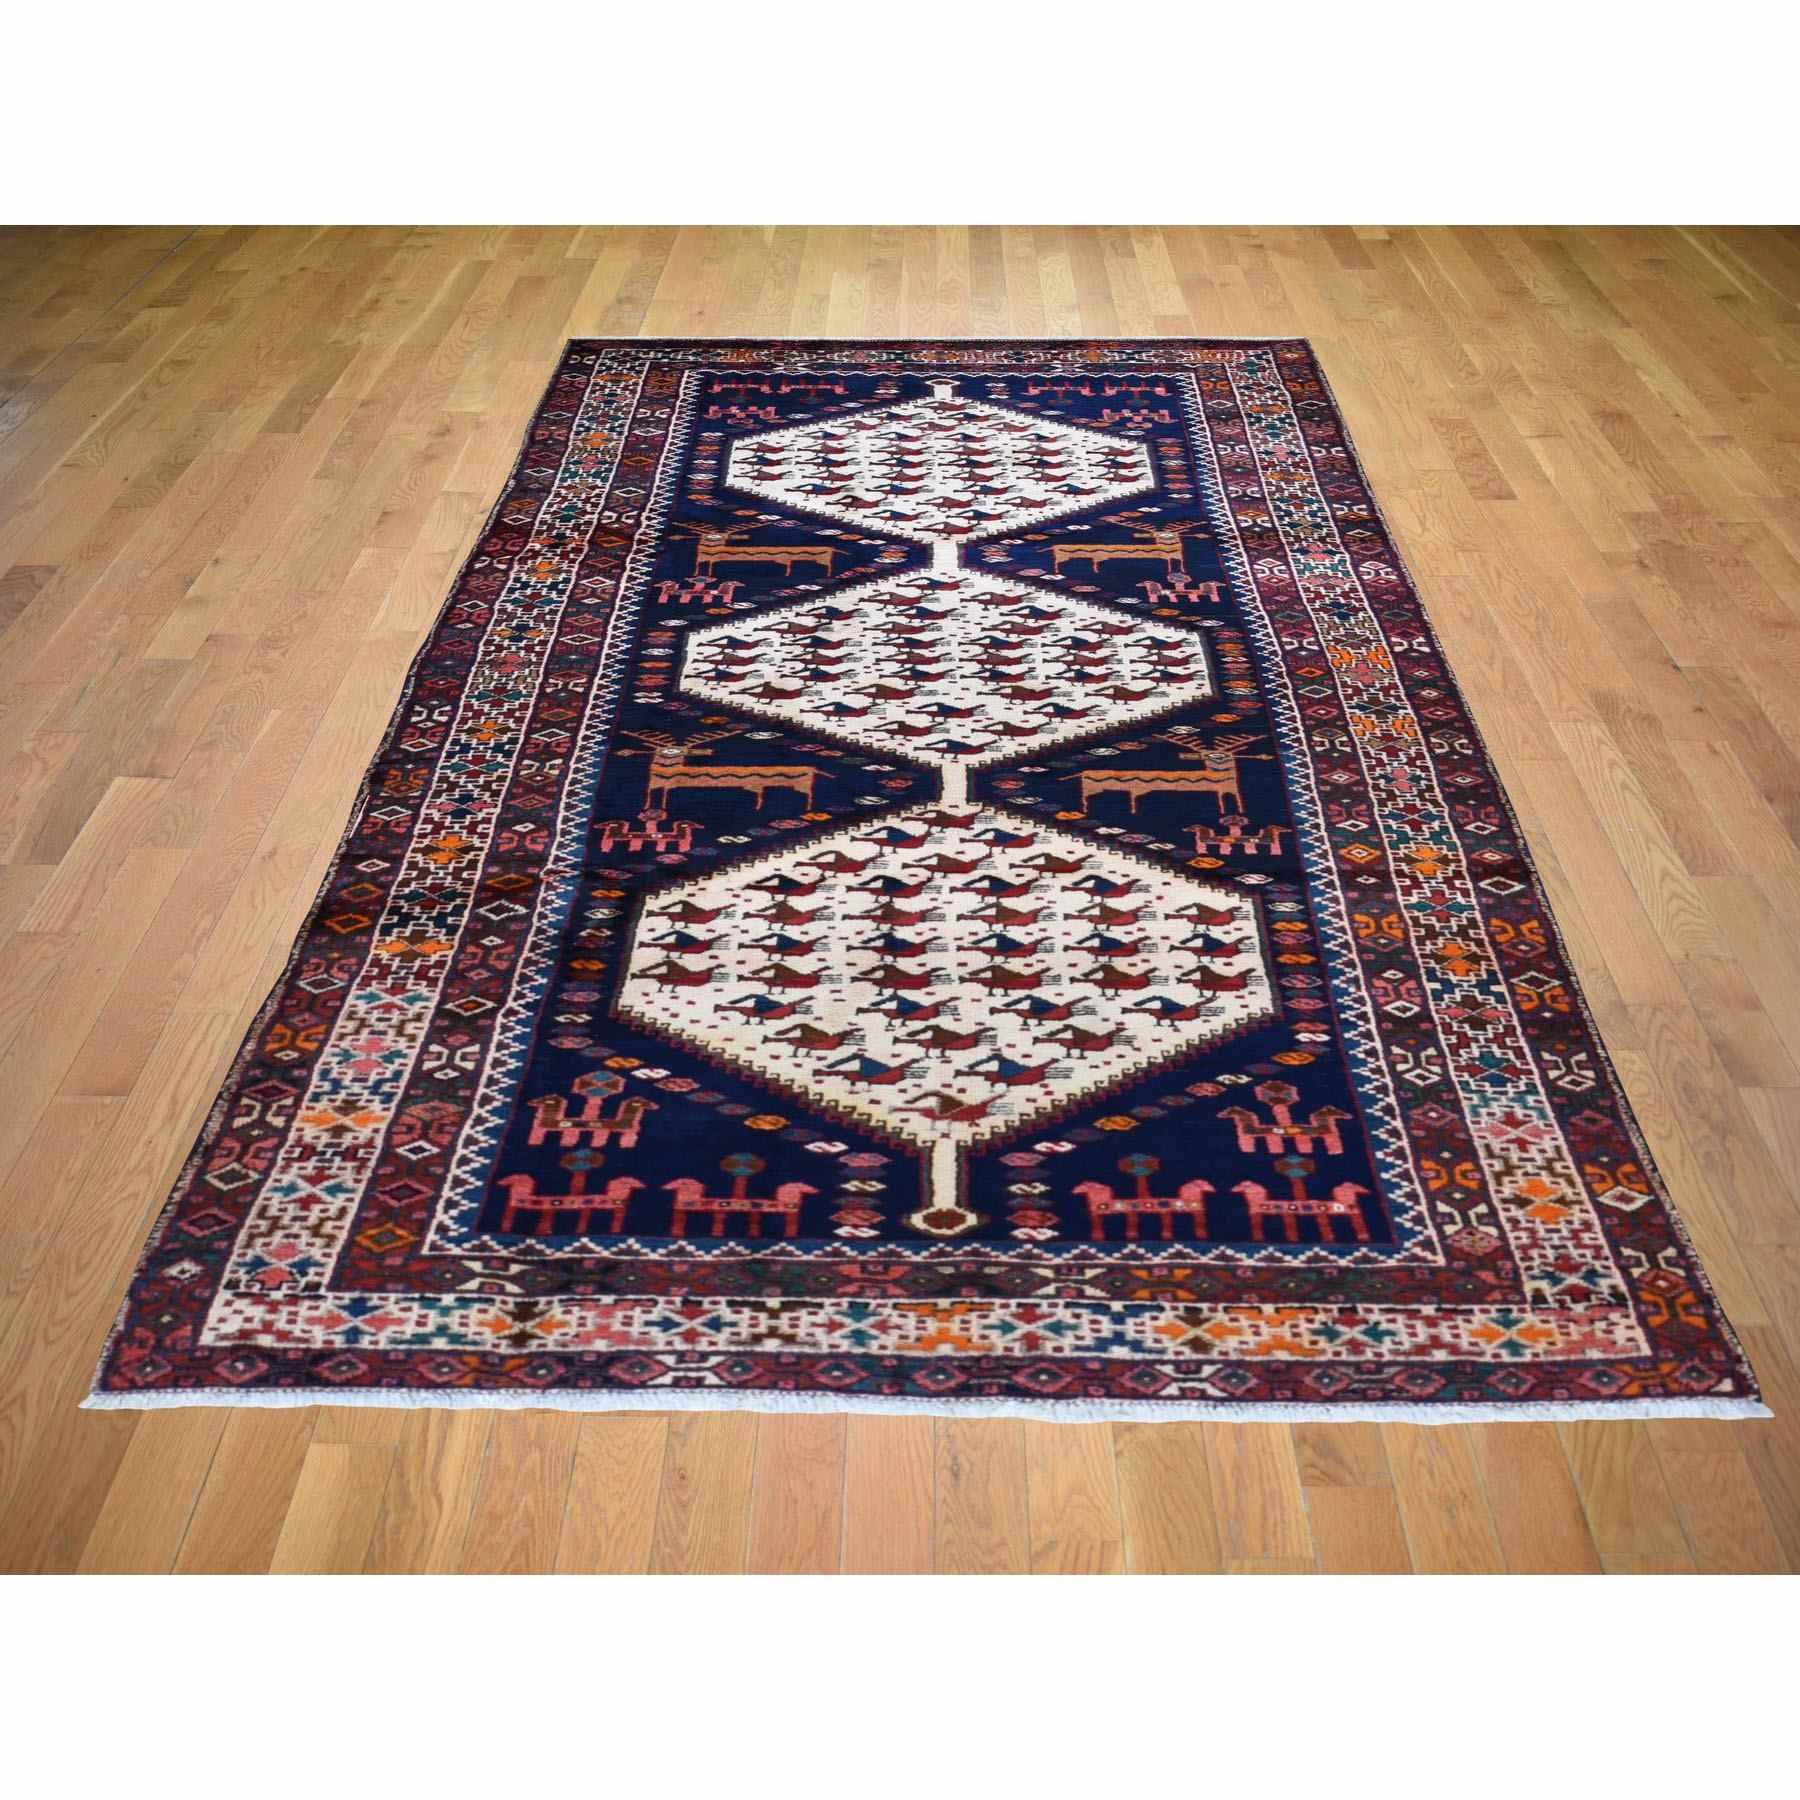 Persian-Hand-Knotted-Rug-249600